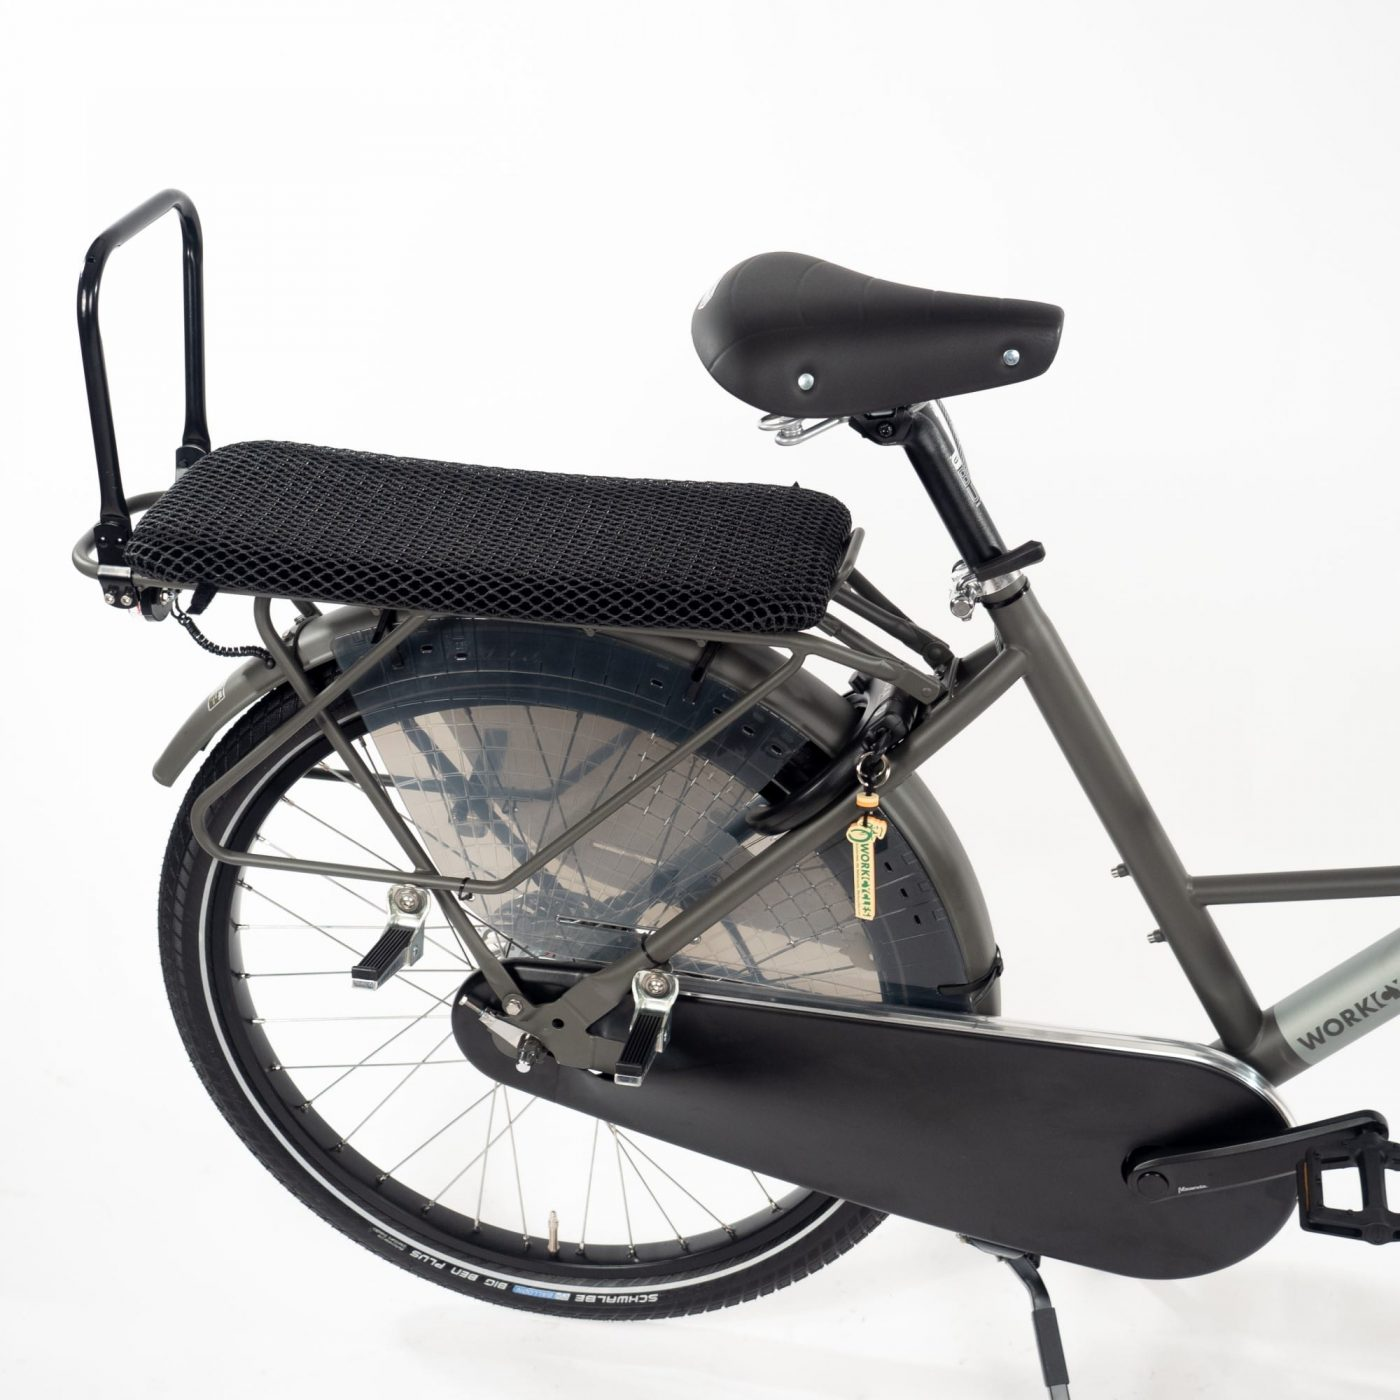 The Fr8 double seat is suitable for one or two children of 5+ years. It comes complete with backrest, extra long mesh cushion, four strong frame mounted footrests and fender mounted rear wheel footguards (at this age seat belts are not necessary). The mesh cushion lets rain water pass through and drys quickly, the backrest can be folded down. The double seat makes full use of the long rear carrier and footrest mounting points, additional rear panniers aren't possible. The Fr8 double seat is only intended for the Fr8 bicycle.